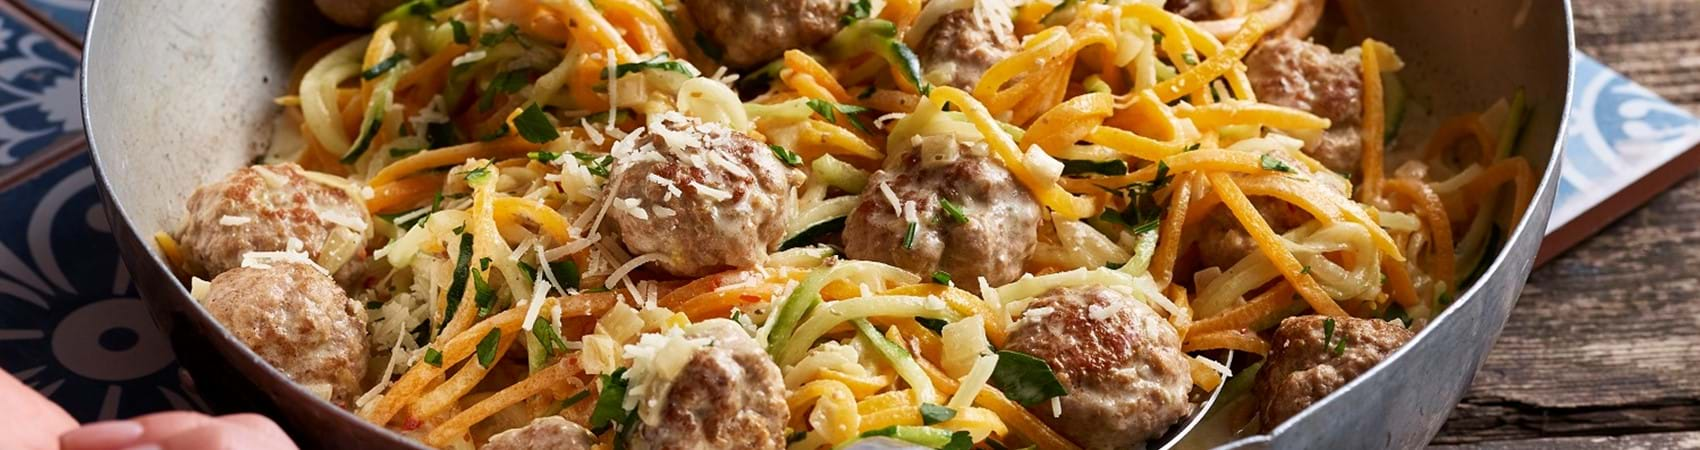 Pork Meatballs with Vegetable Ribbons